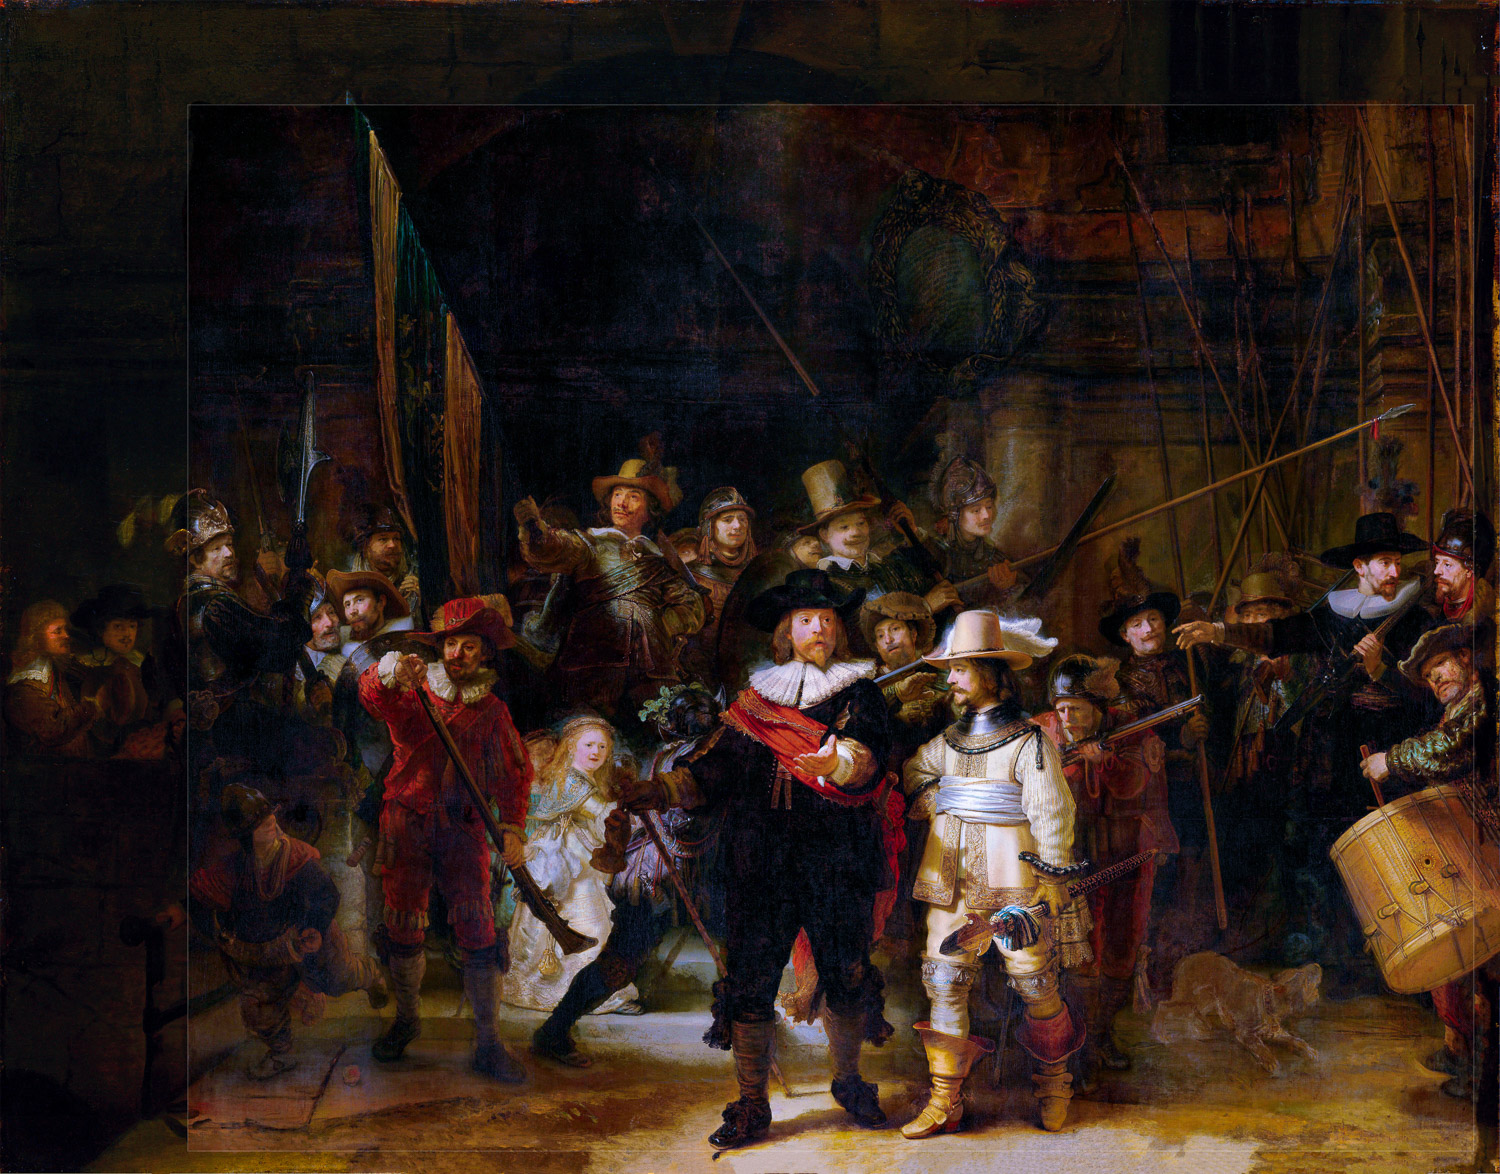 Rembrandt: the Night Watch (restored version with help of Gerrit Lundens)